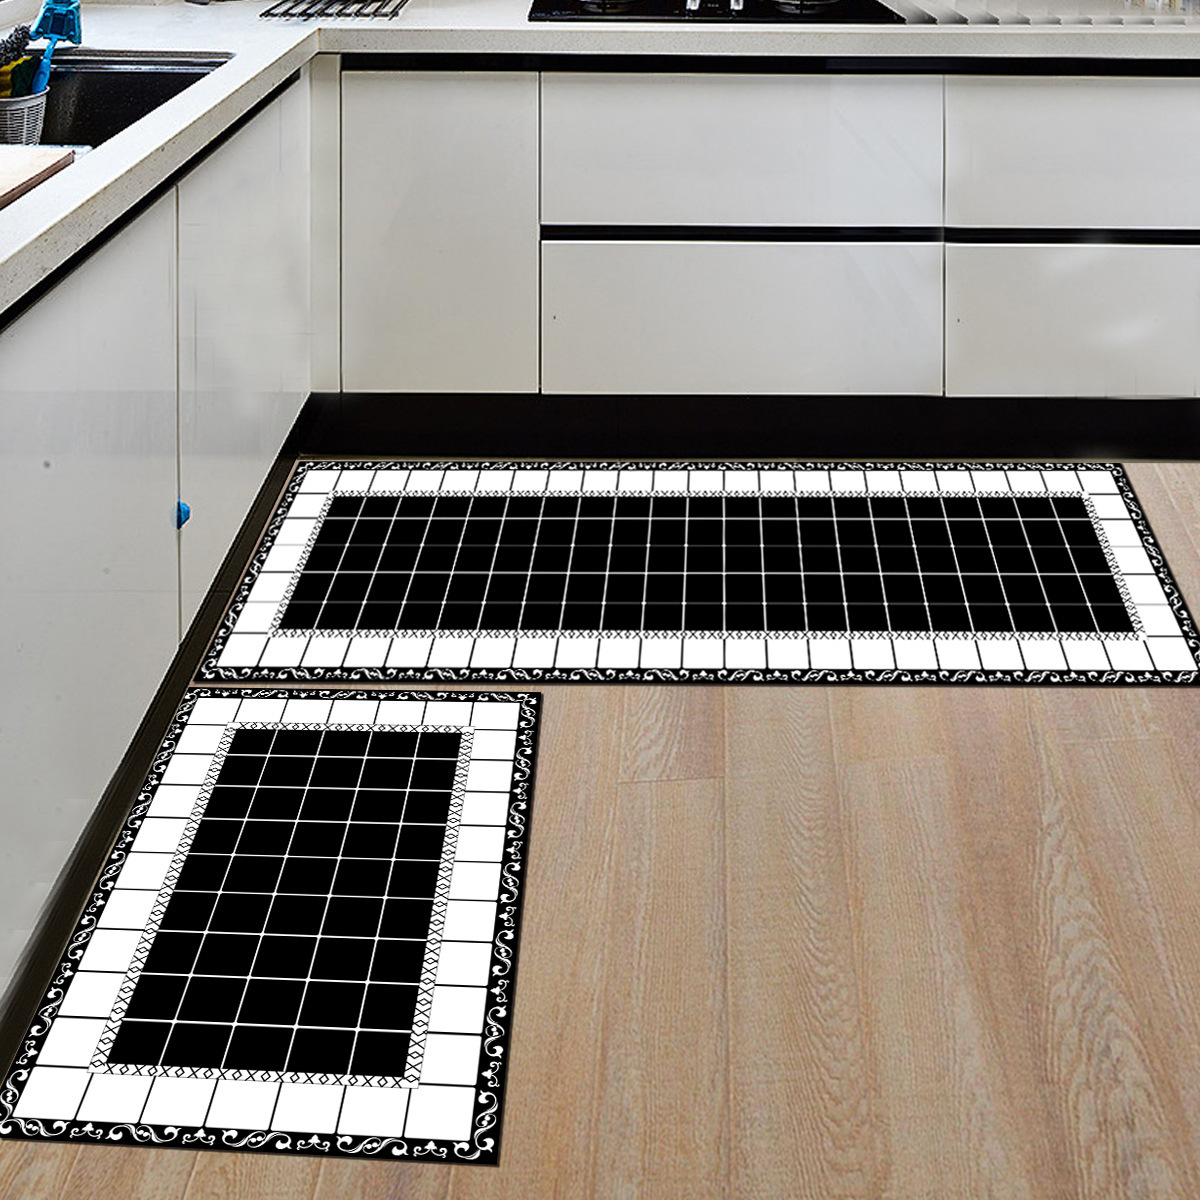 Directly Kitchen Land The Door floor Mat Strip Household Bedroom Water Uptake Defence Foots Pad Shower Room Non-slip Cushion